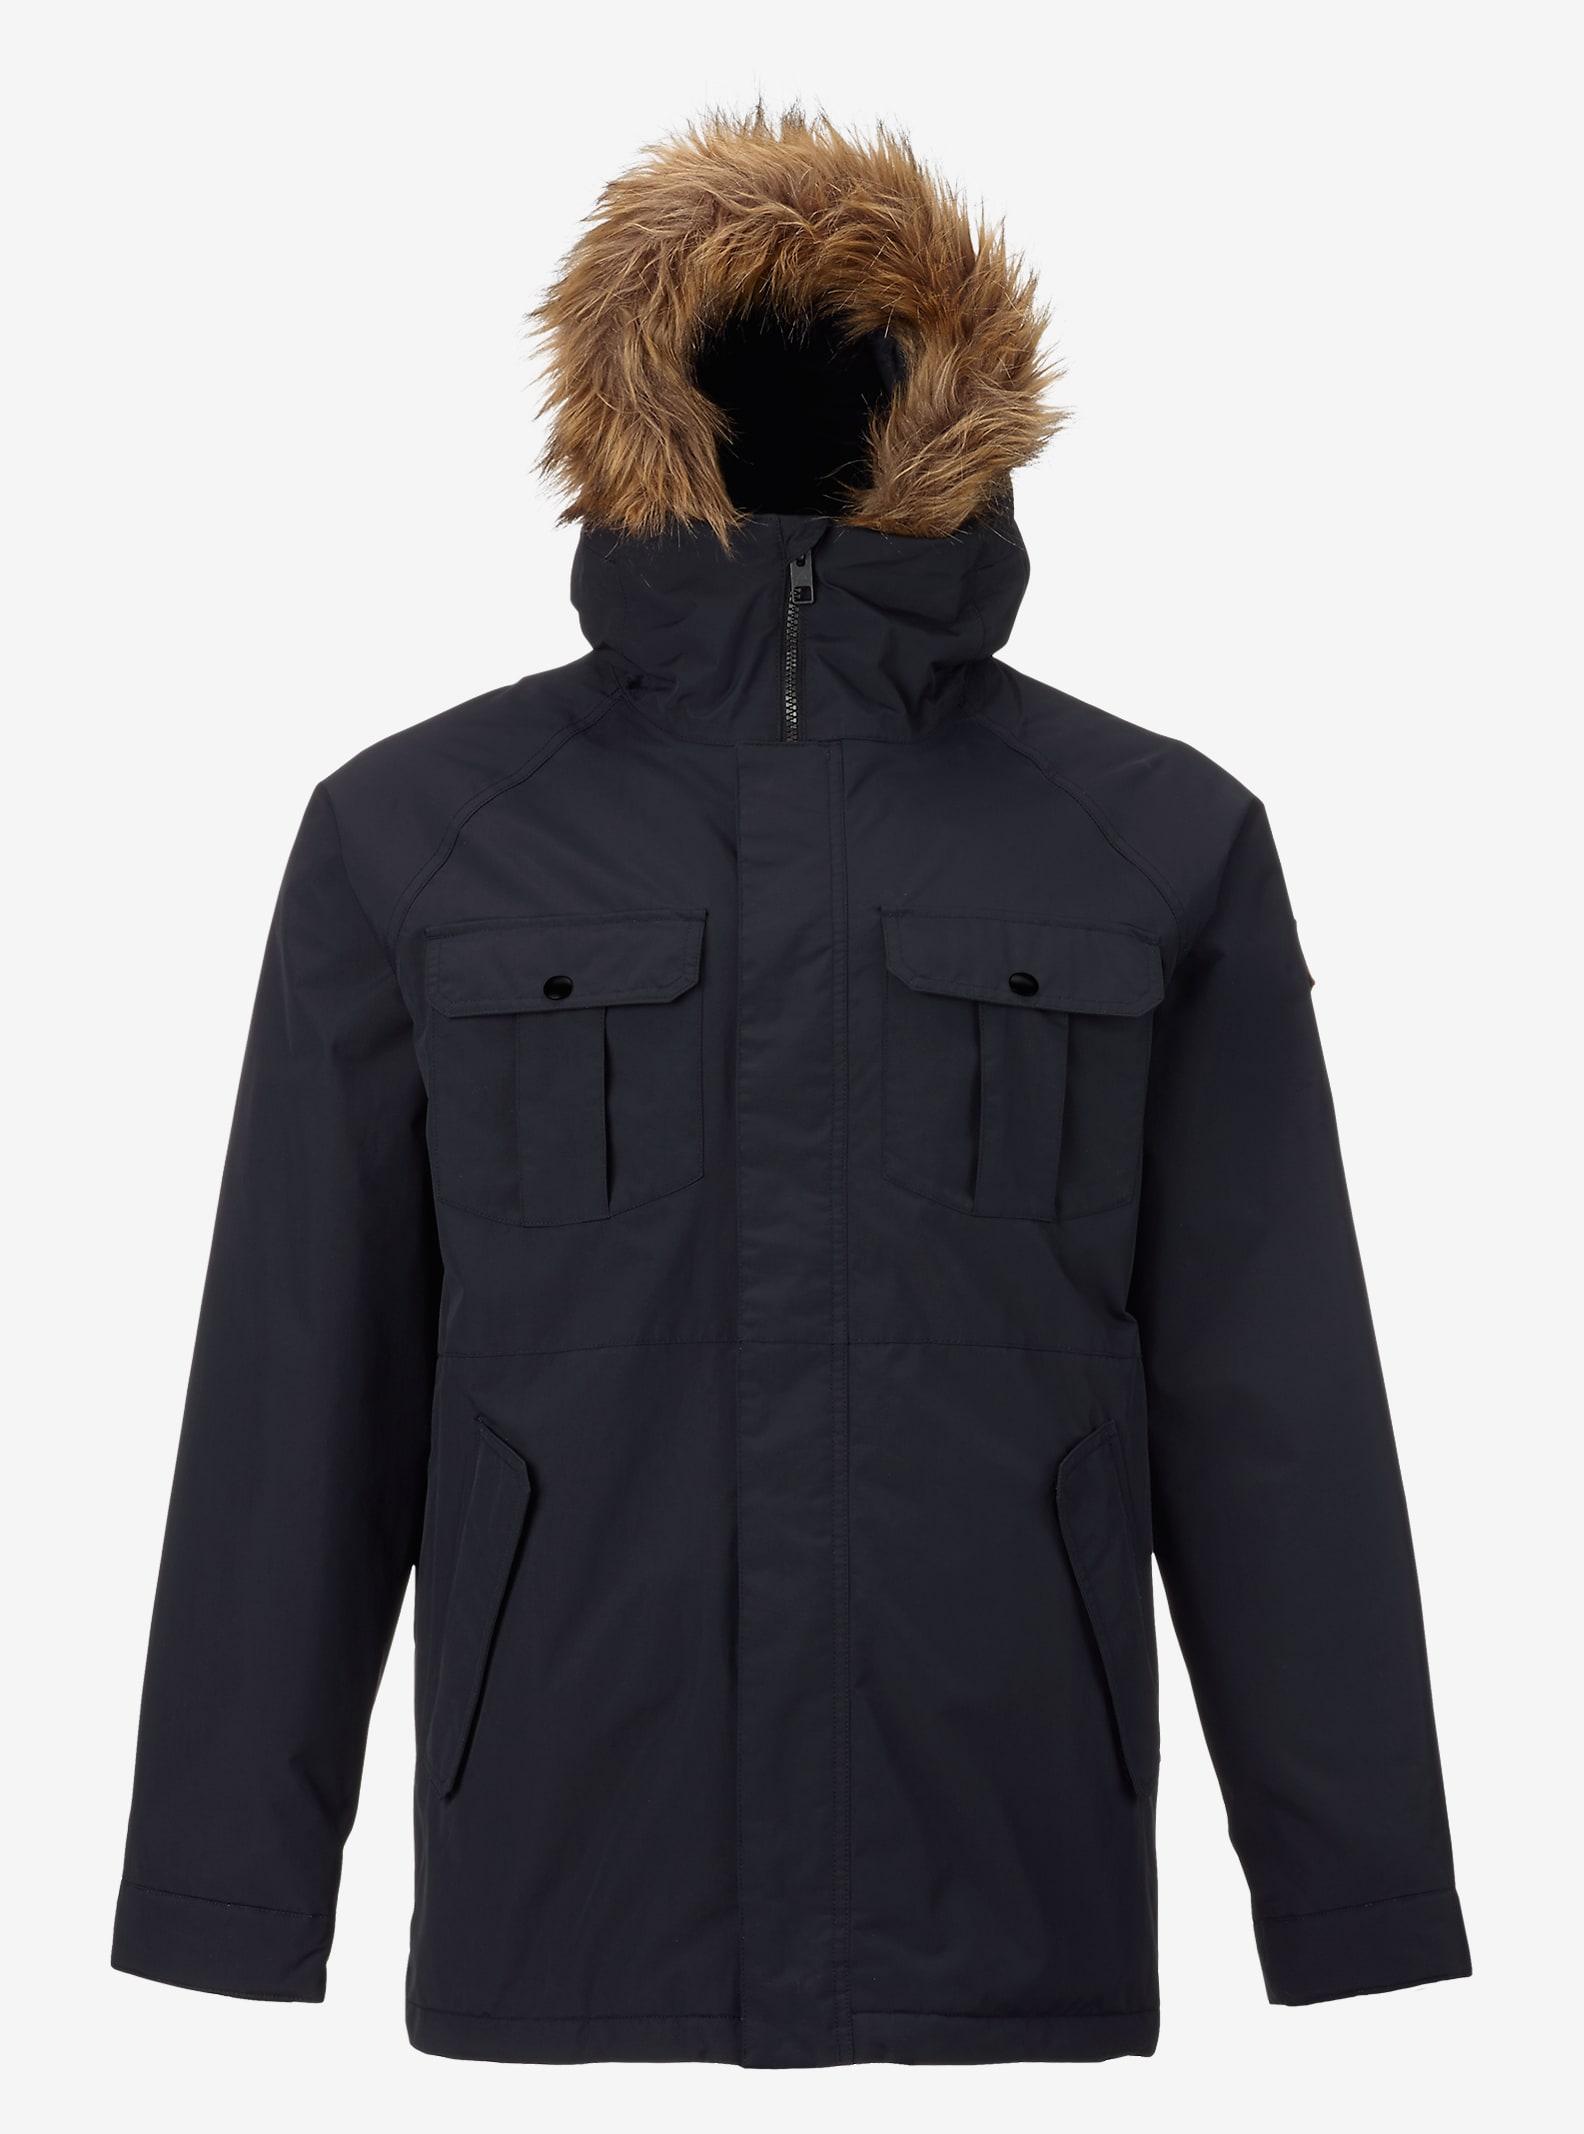 Burton Doyle Jacket shown in True Black